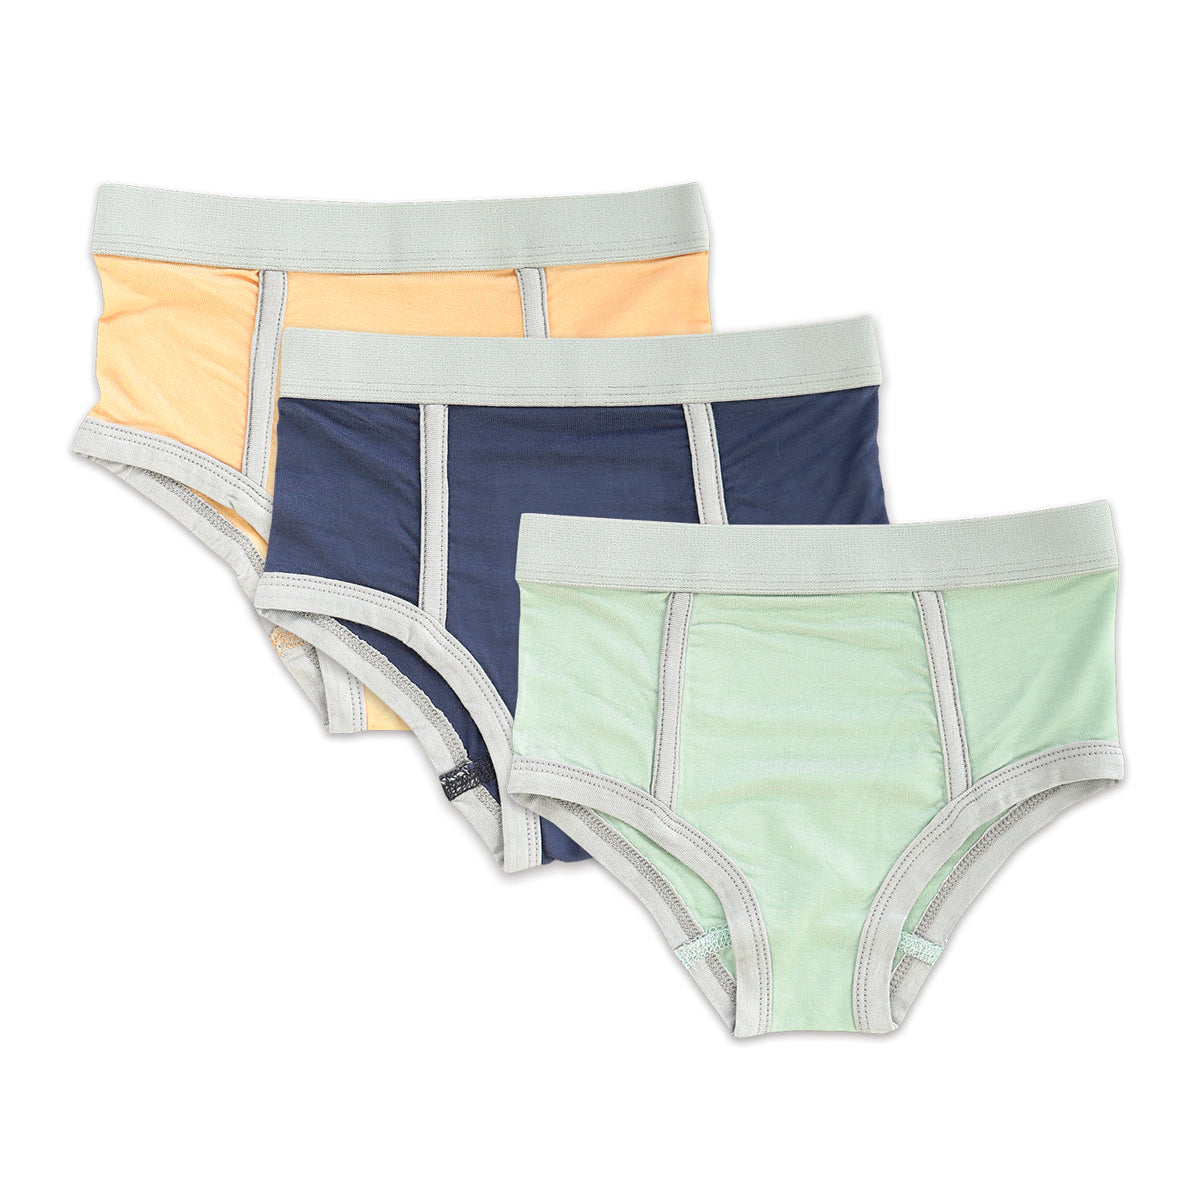 Bamboo Boys Briefs (3 pack) - Peach Sand/Poseidon/Sea Mist